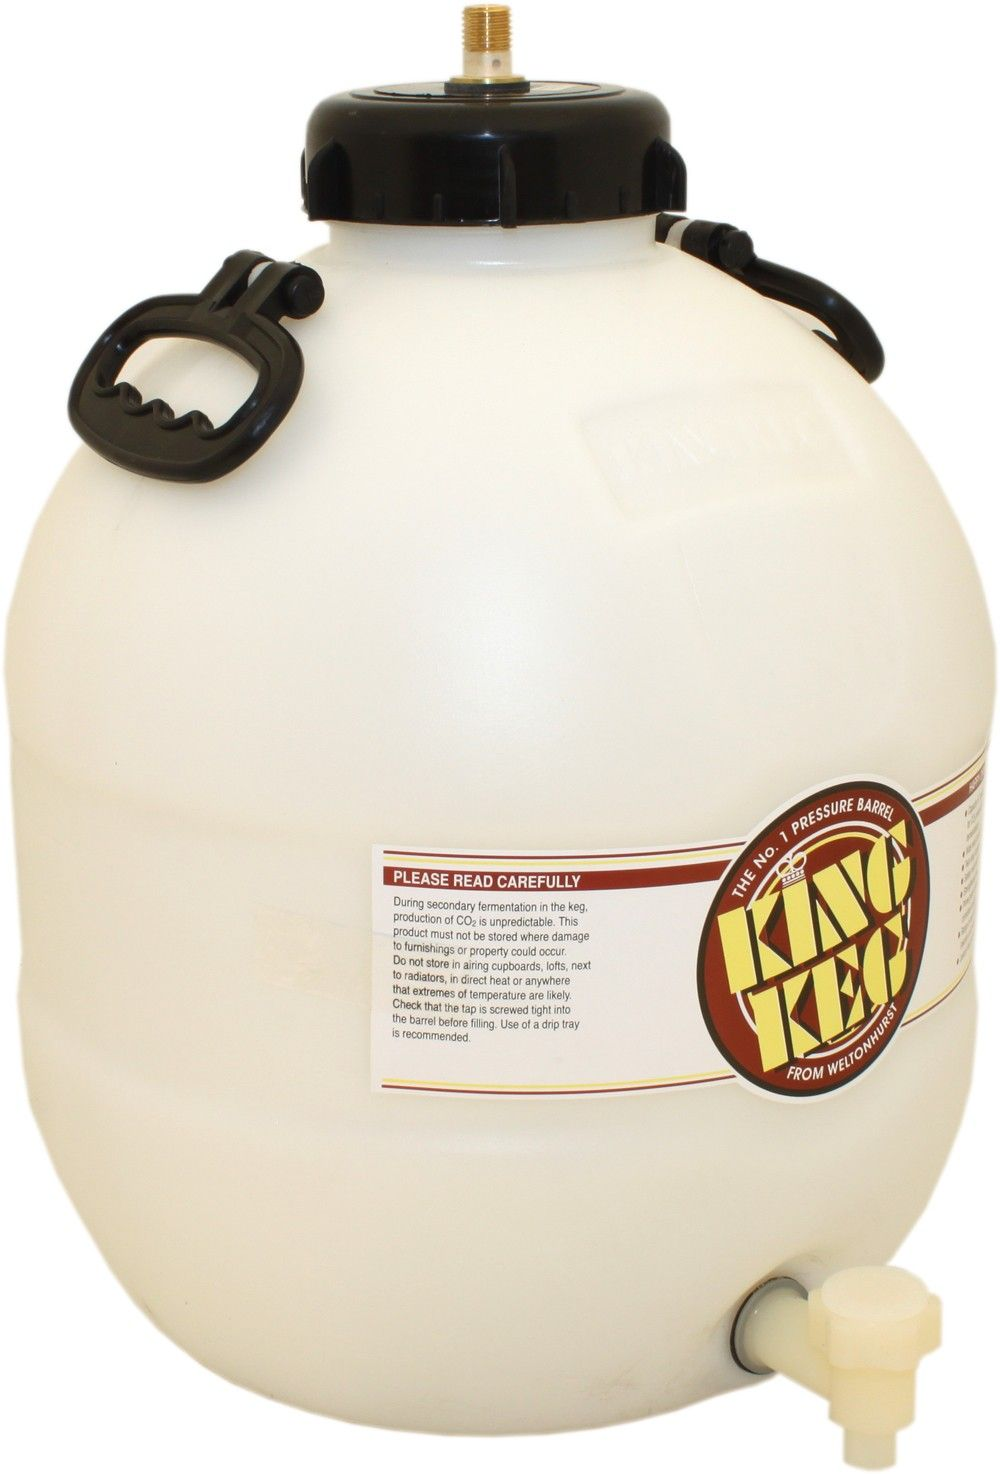 Brew2bottle stocks two types of pressure barrel for the